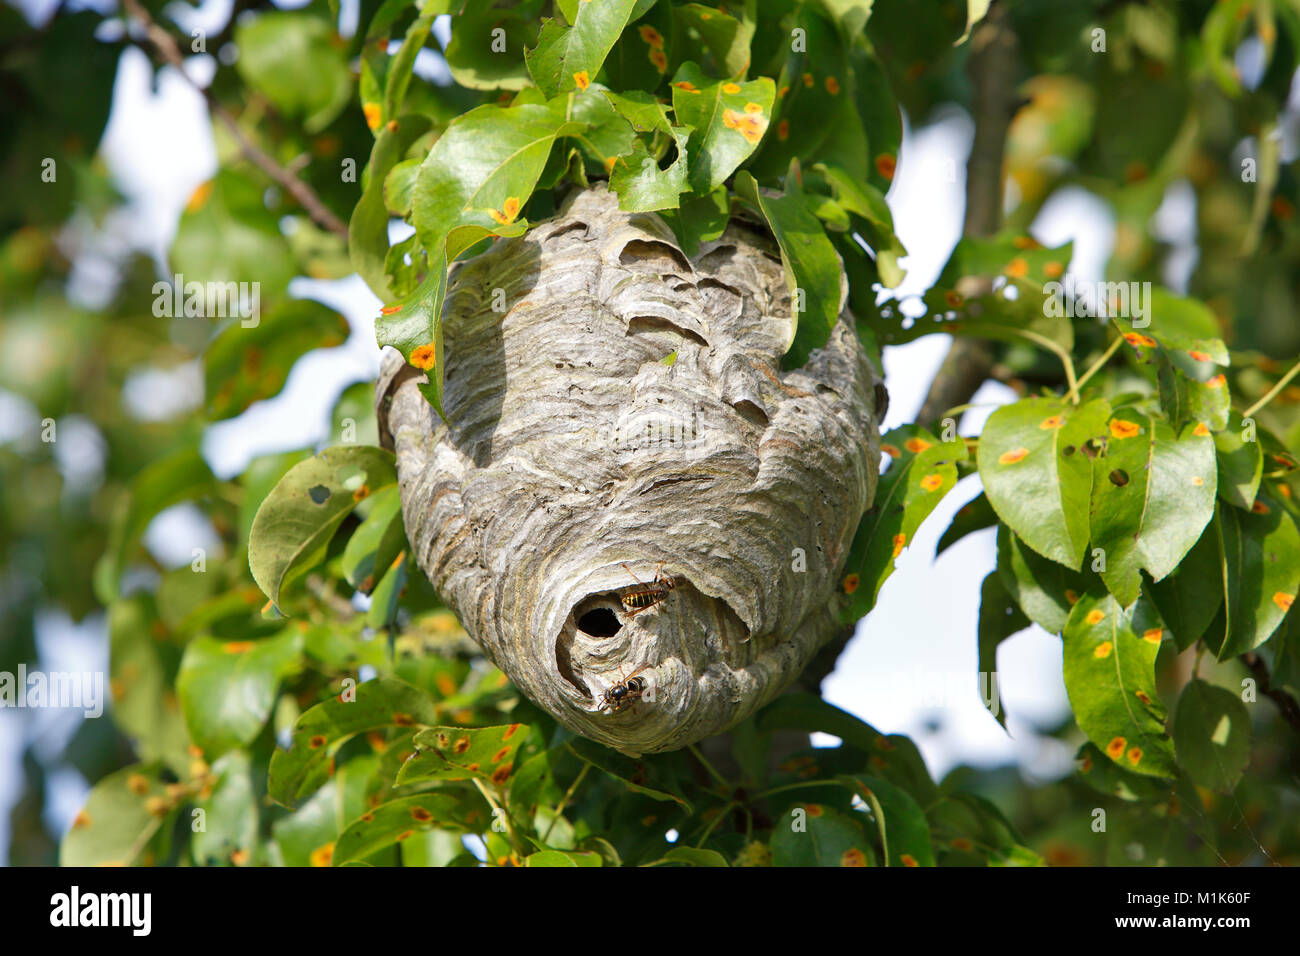 Vespiary of the Median Wasp (Dolichovespula media), Middle Elbe Biosphere Reserve, Saxony-Anhalt, Germany - Stock Image